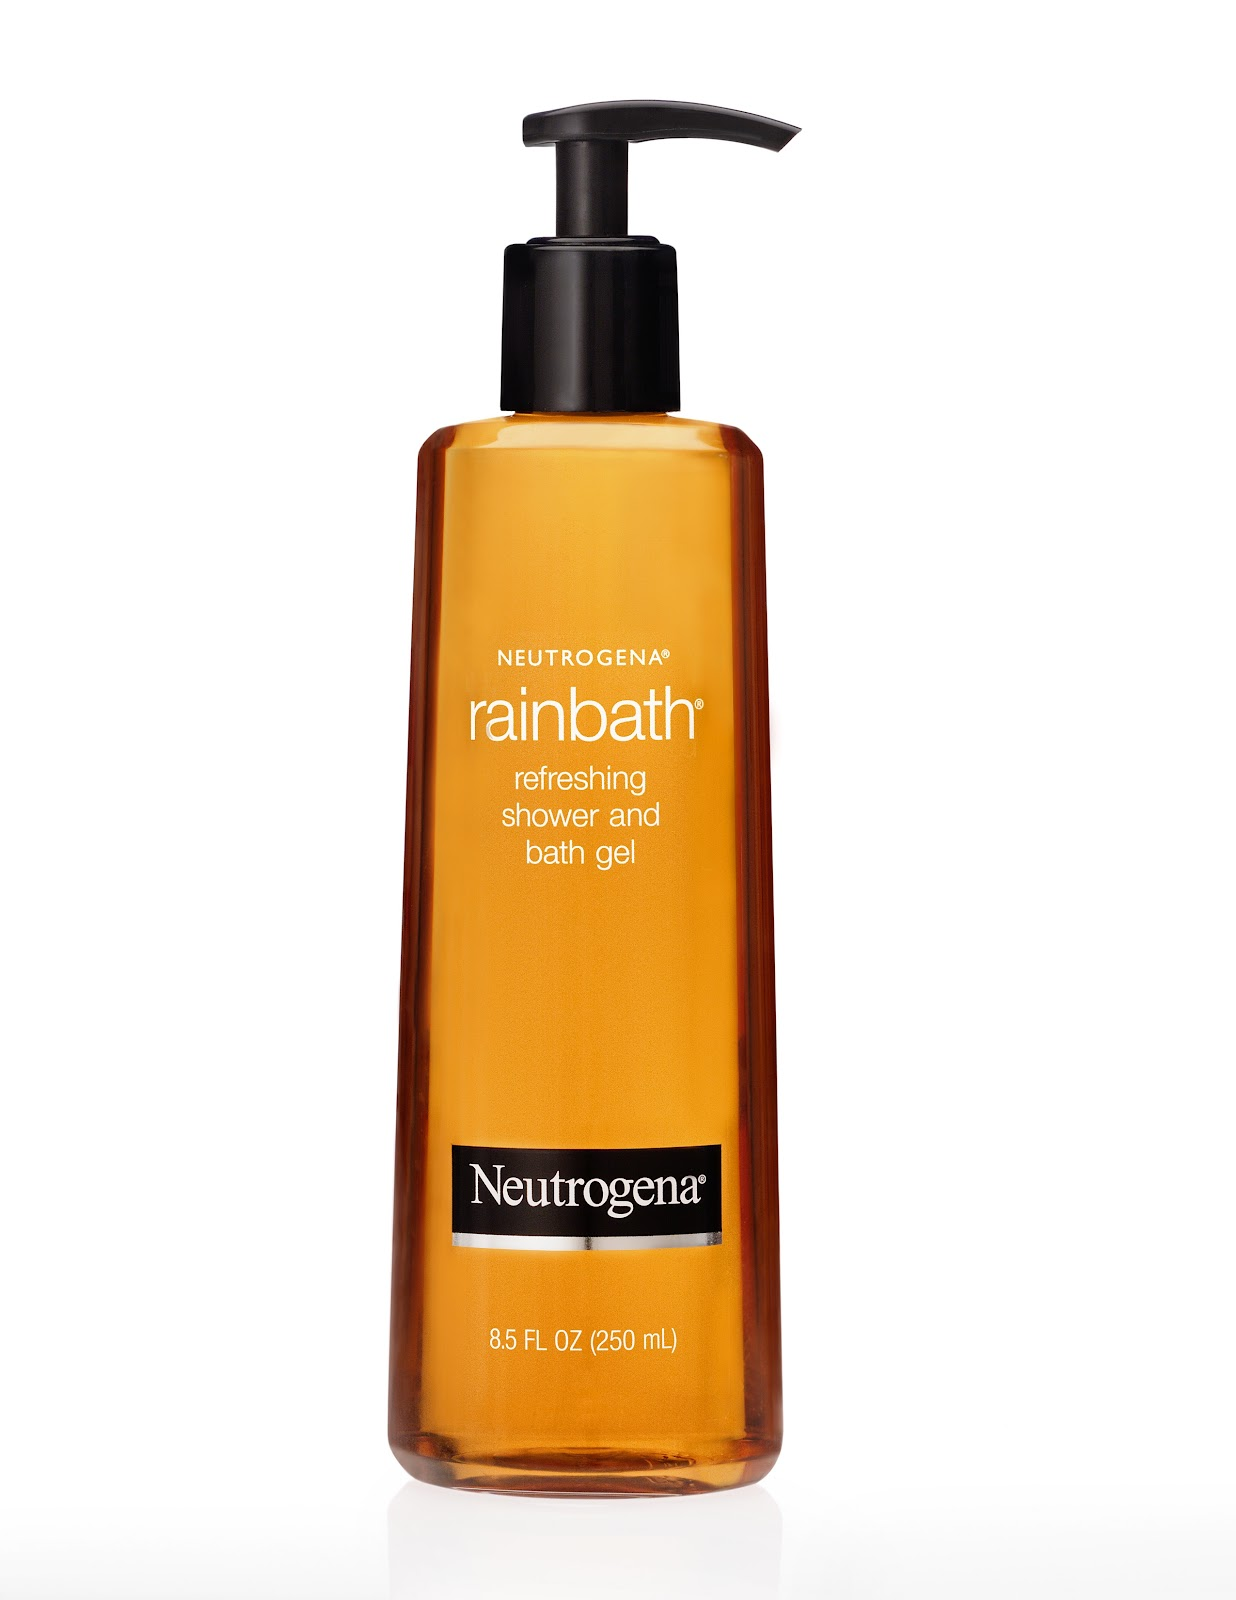 neutrogena twitter party thursday at 1 30pm rouge 18